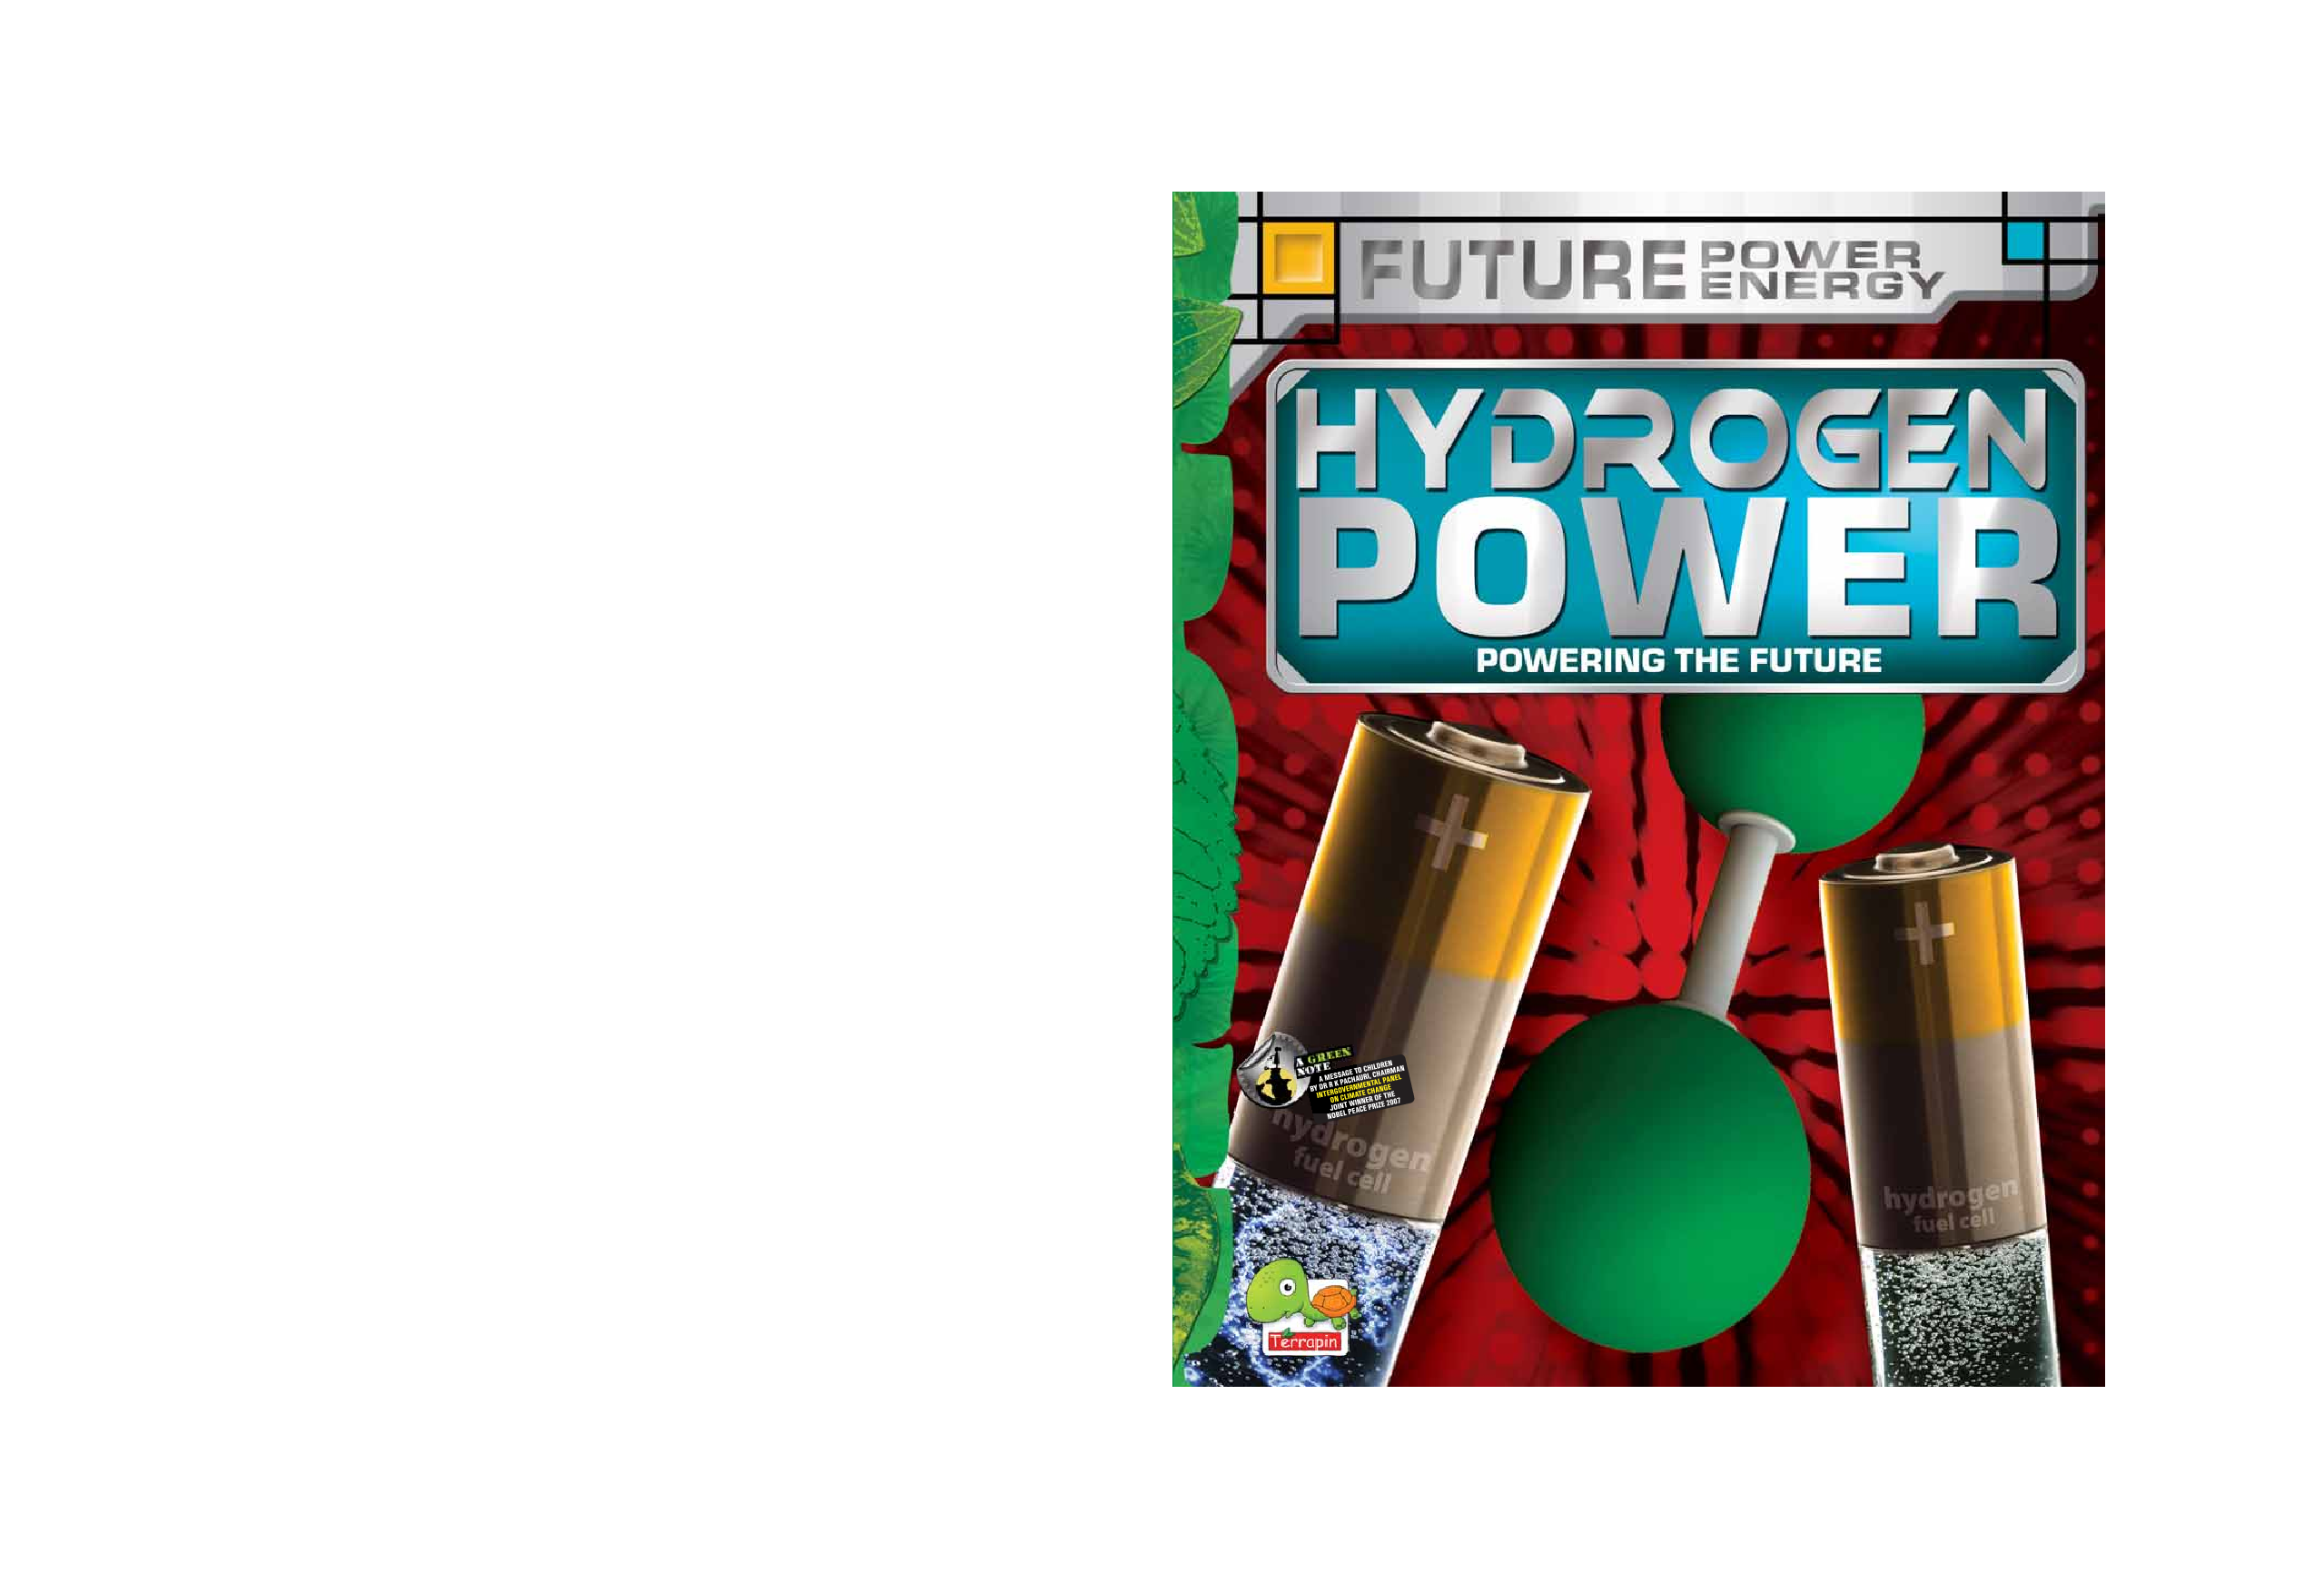 Future Power,Future Energy : Hydrogen Power - Page 1